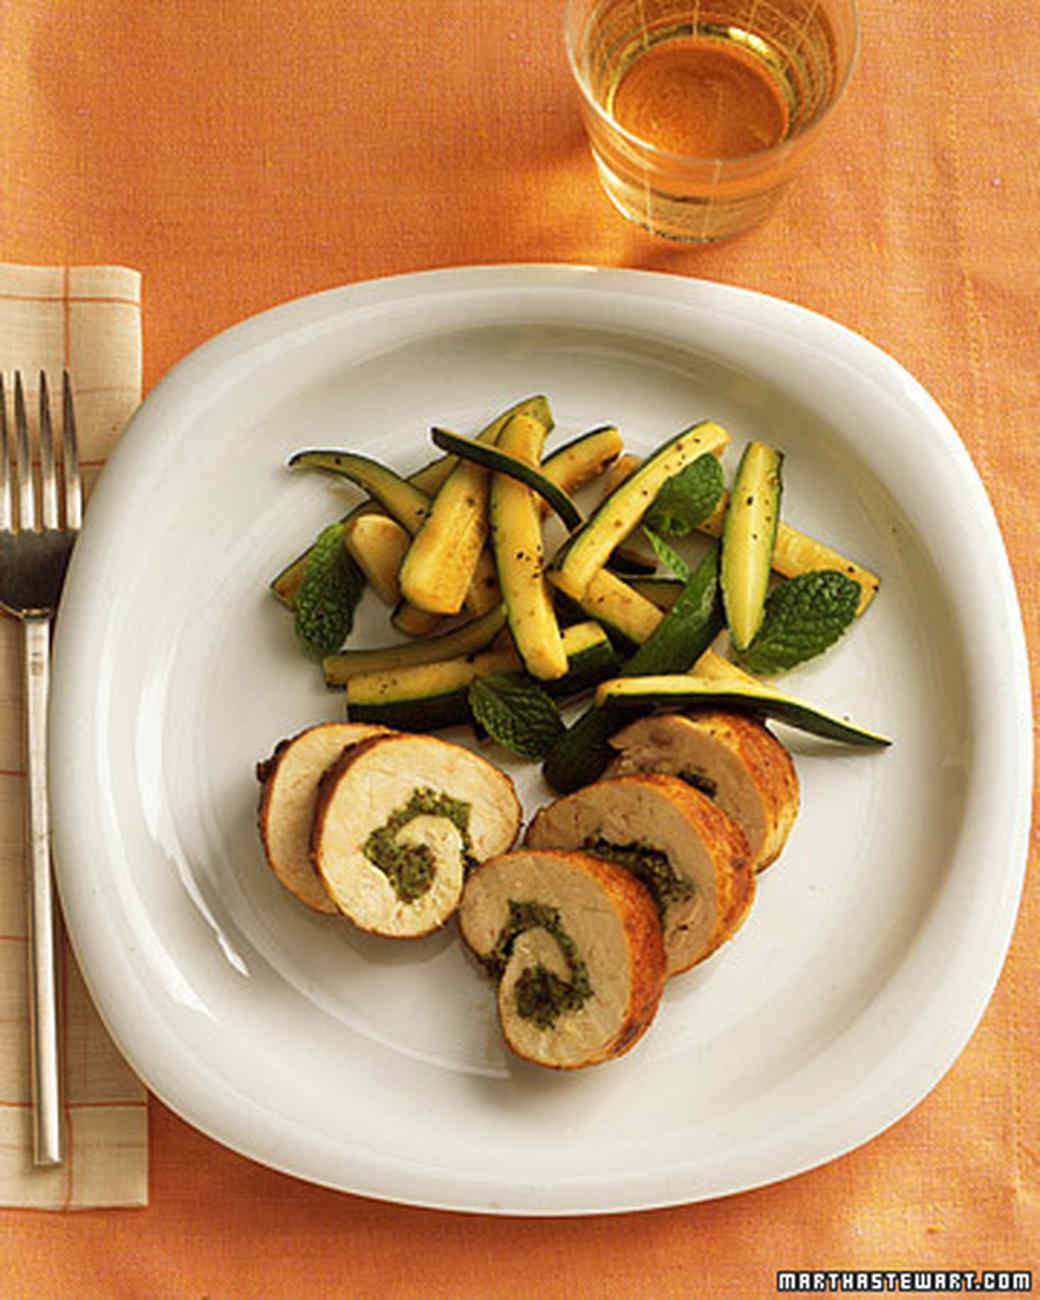 Rolled Chicken Breasts with Almond-Mint Pesto and Zucchini